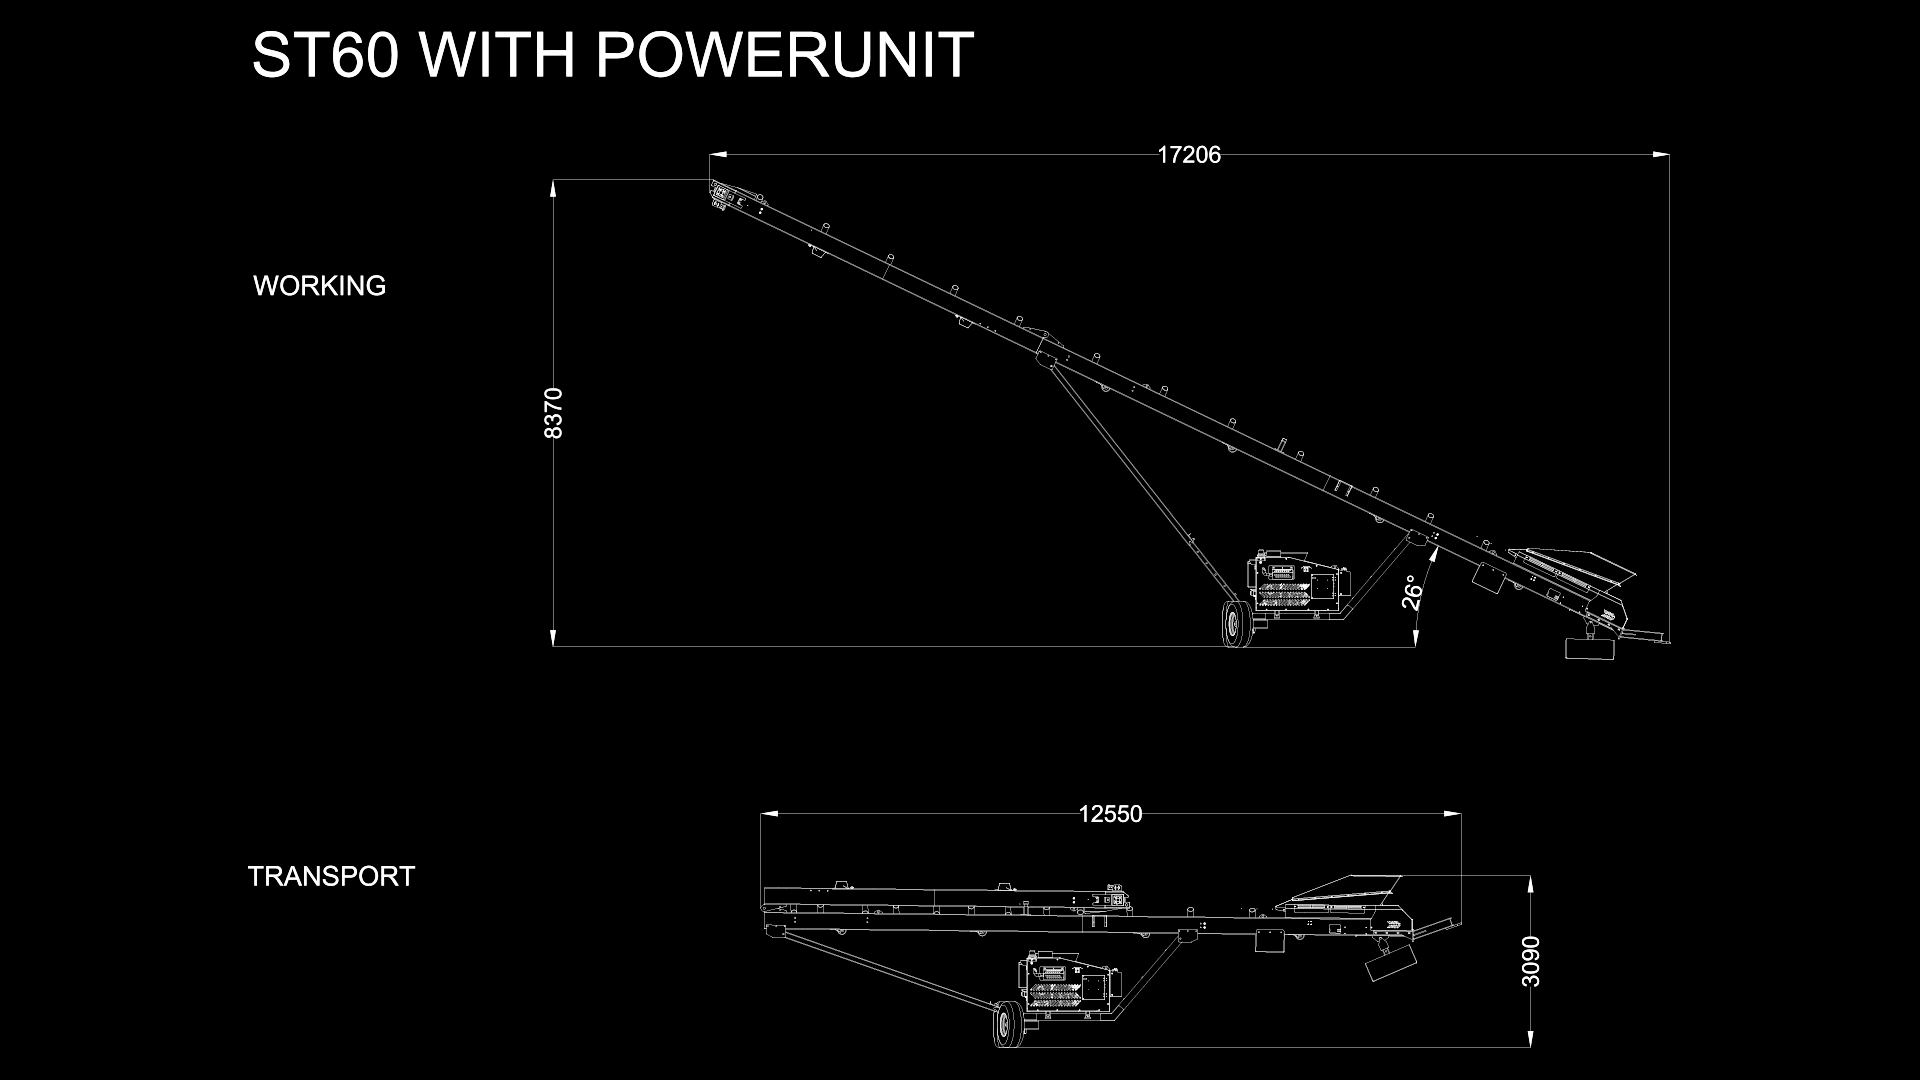 st60-with-powerunit-drawing-1